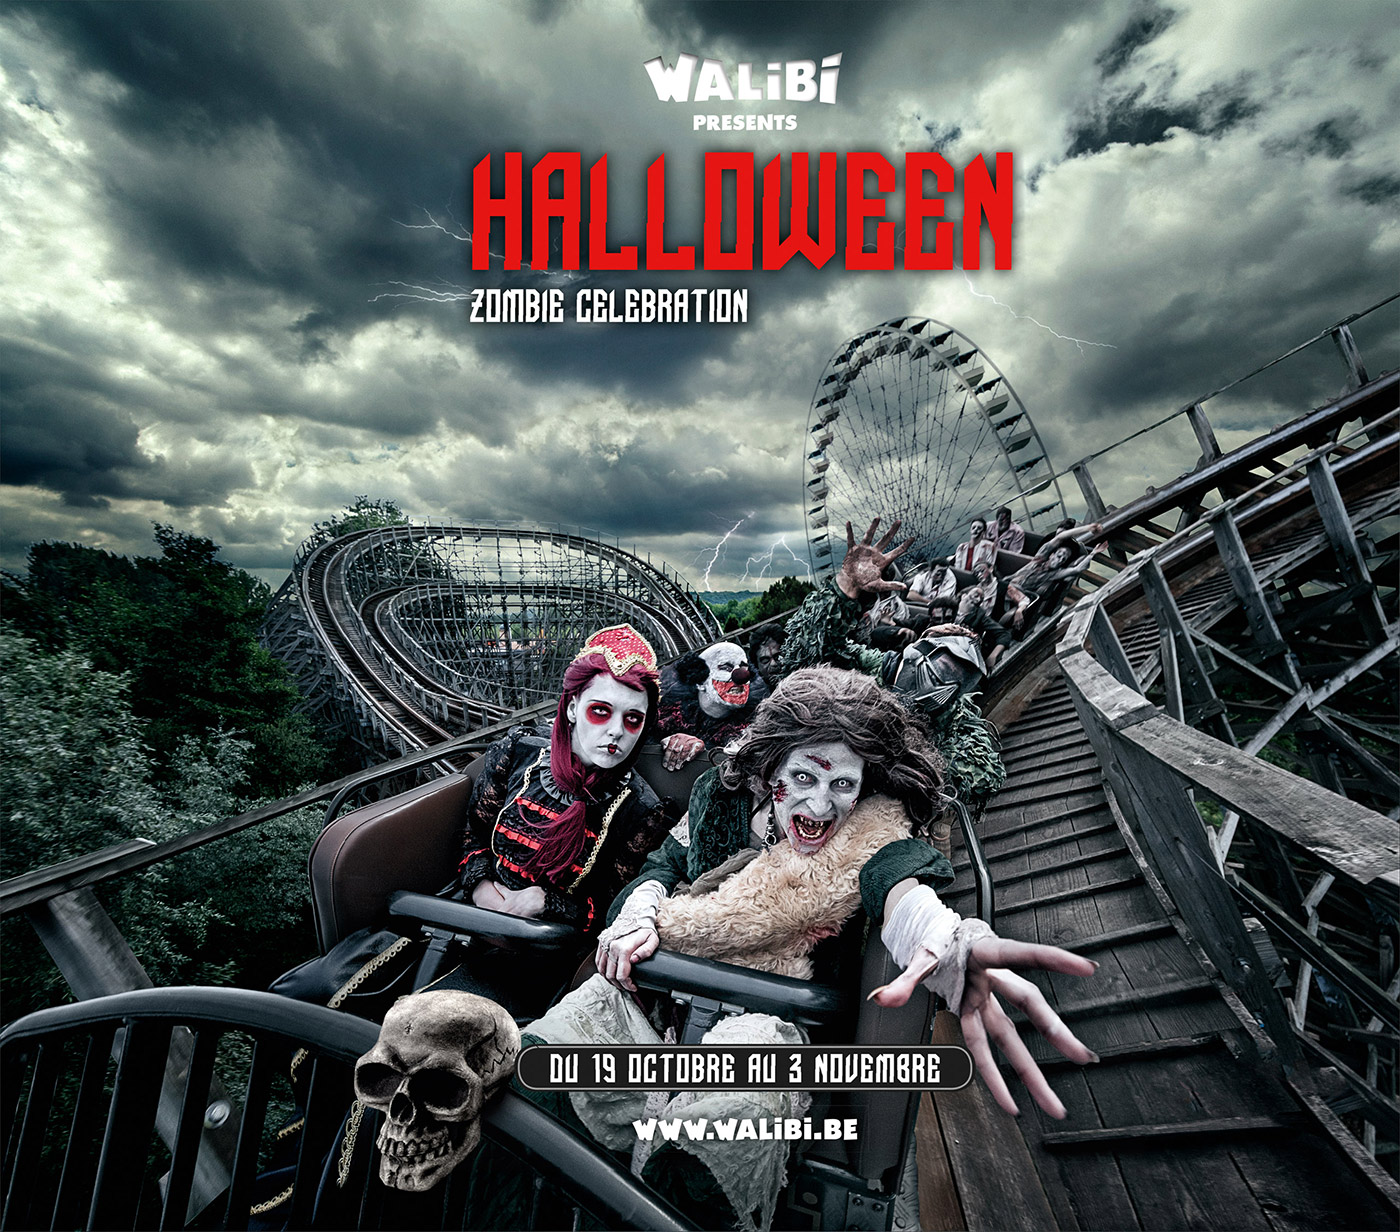 walibi halloween zombie celebration